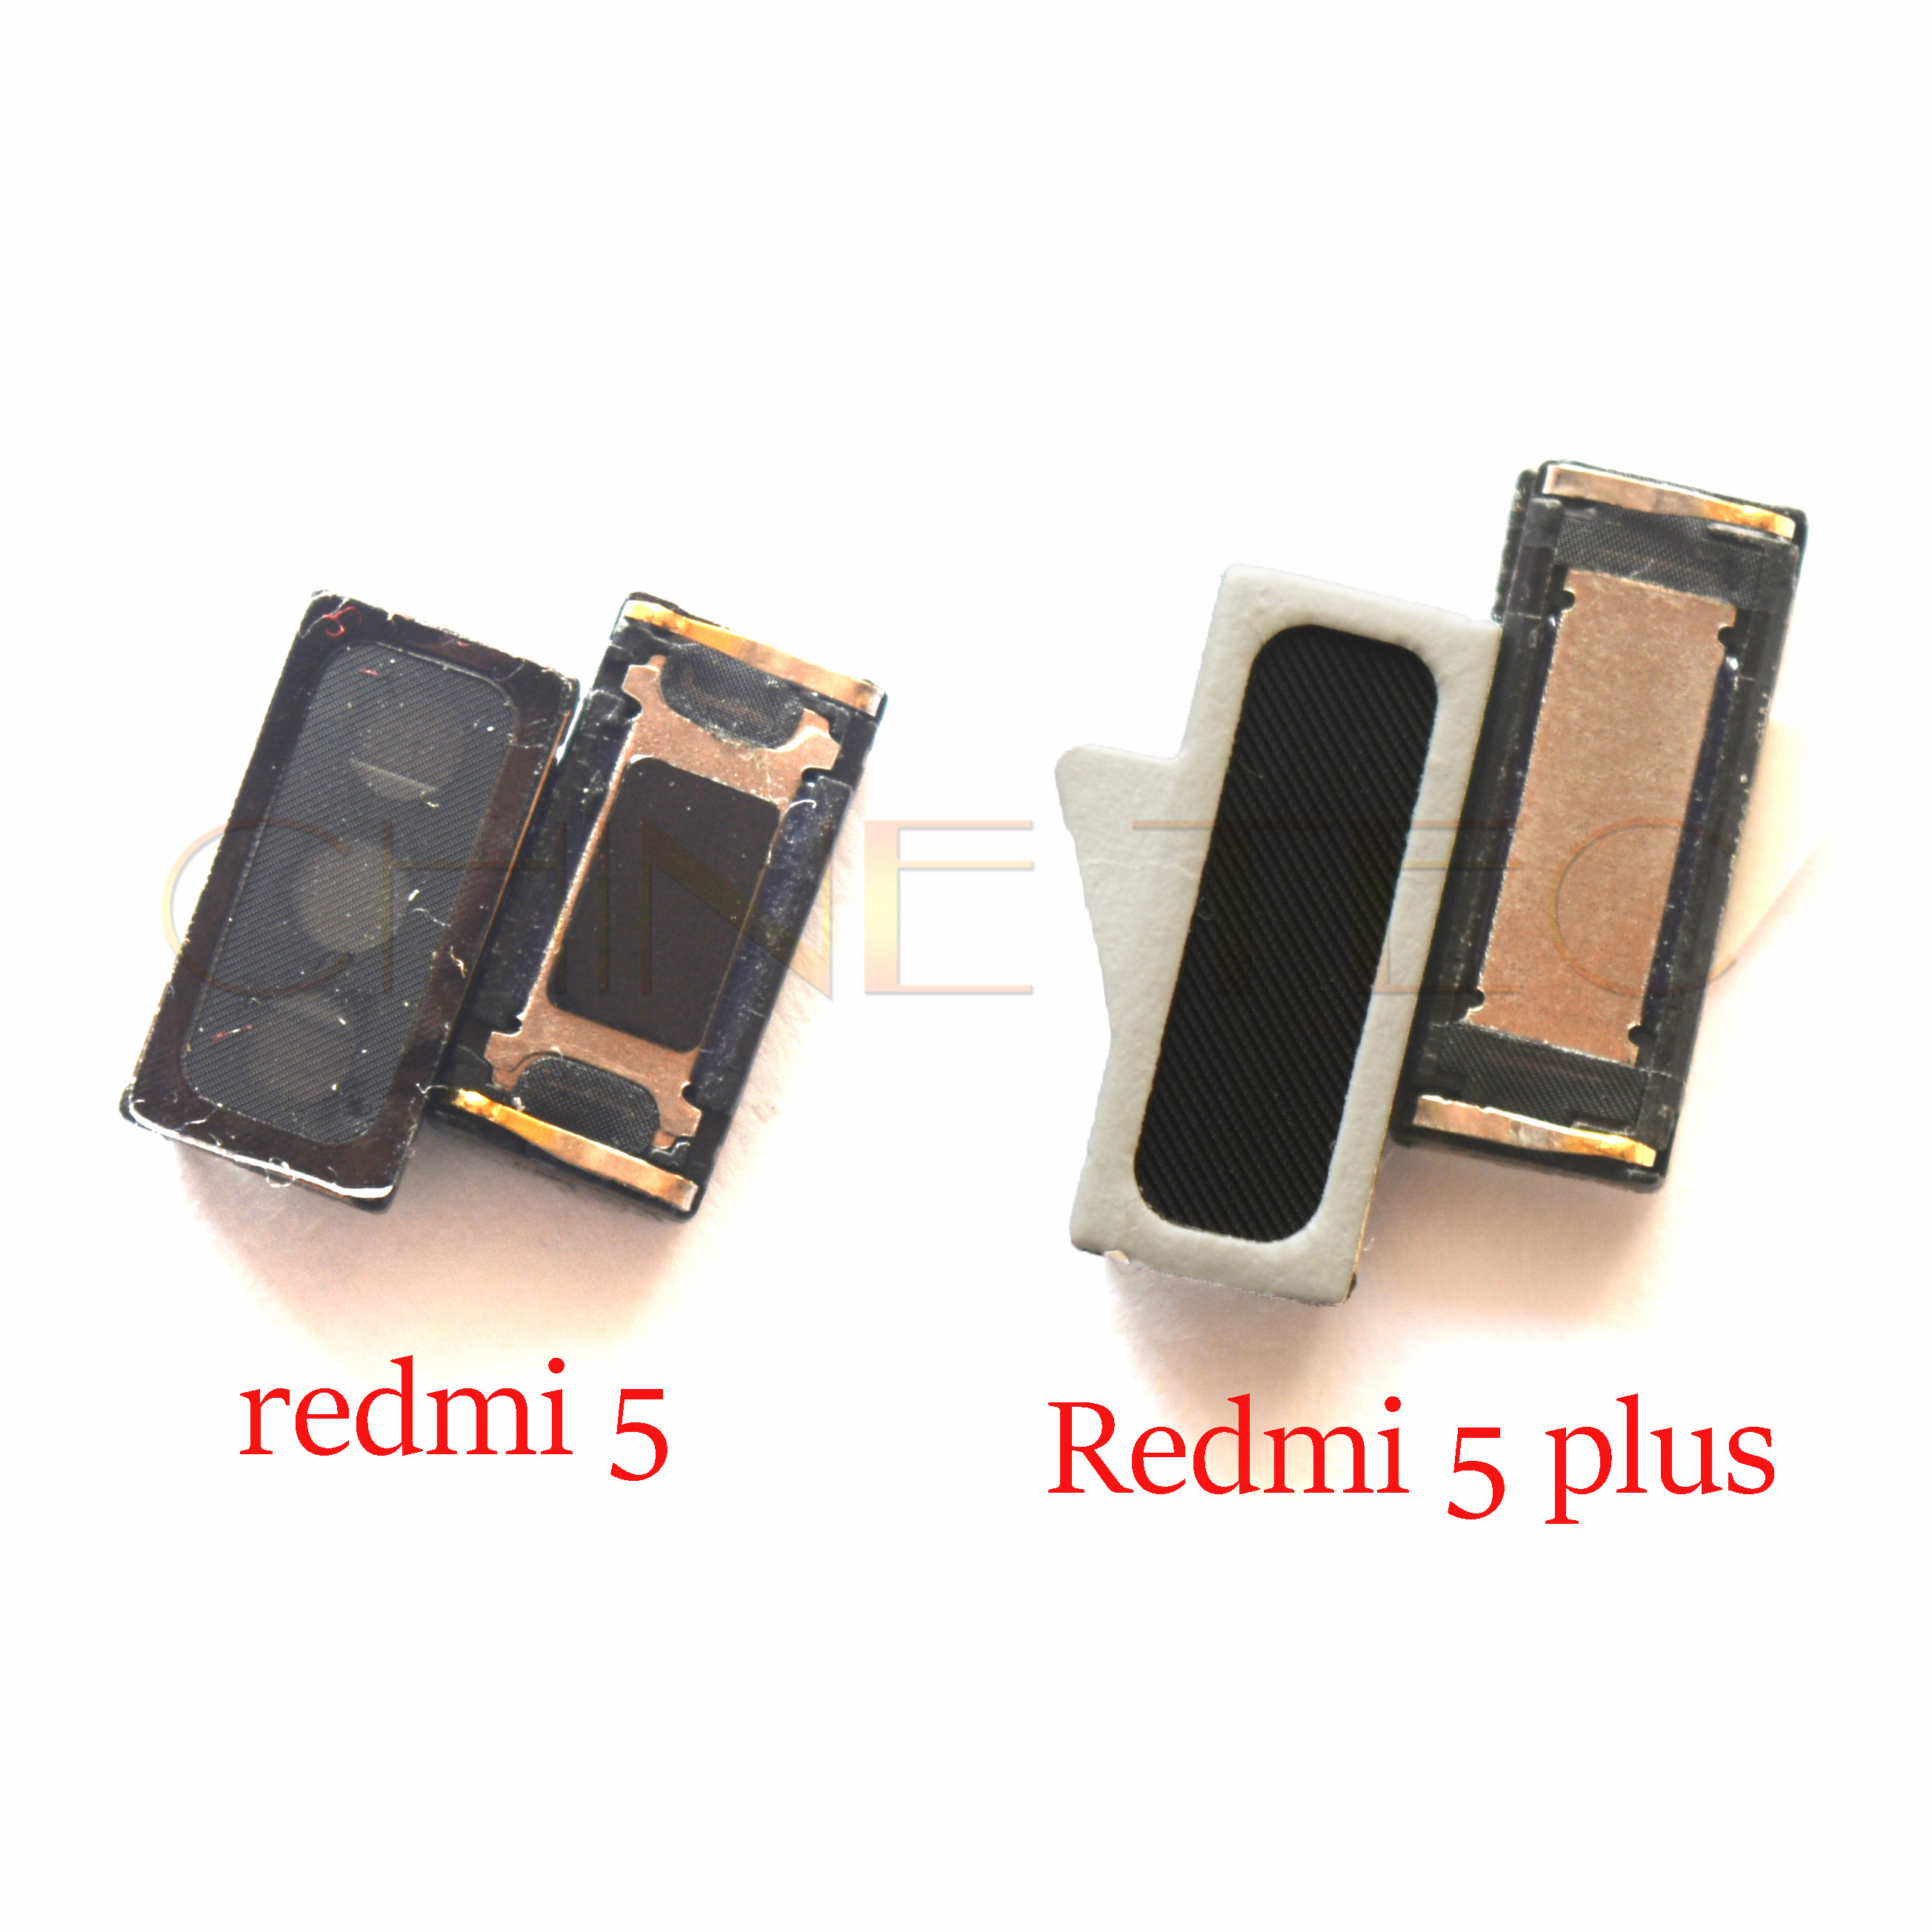 2x New Earpiece Ear Speaker For Xiaomi  Mi A1 A2 Lite Redmi 5 5 Plus 5A Redmi Note 5A  Y1 Y2 S2 (Redmi Y1/ Lite /Prime ) MiA1